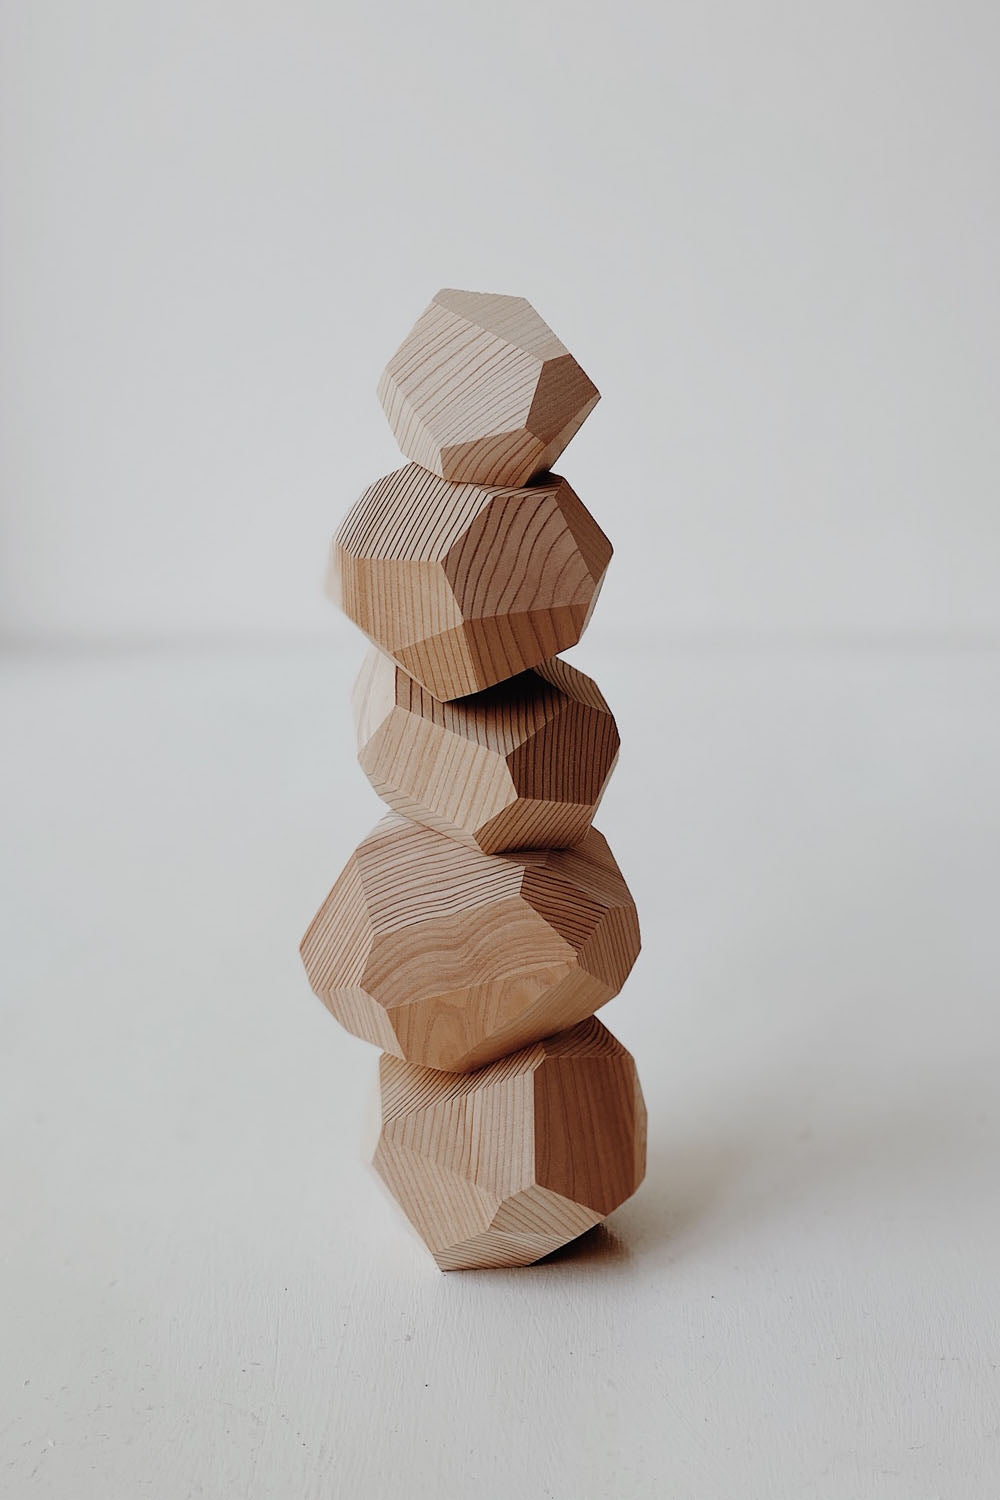 Tumu-isi Balancing Blocks - Beech Wood